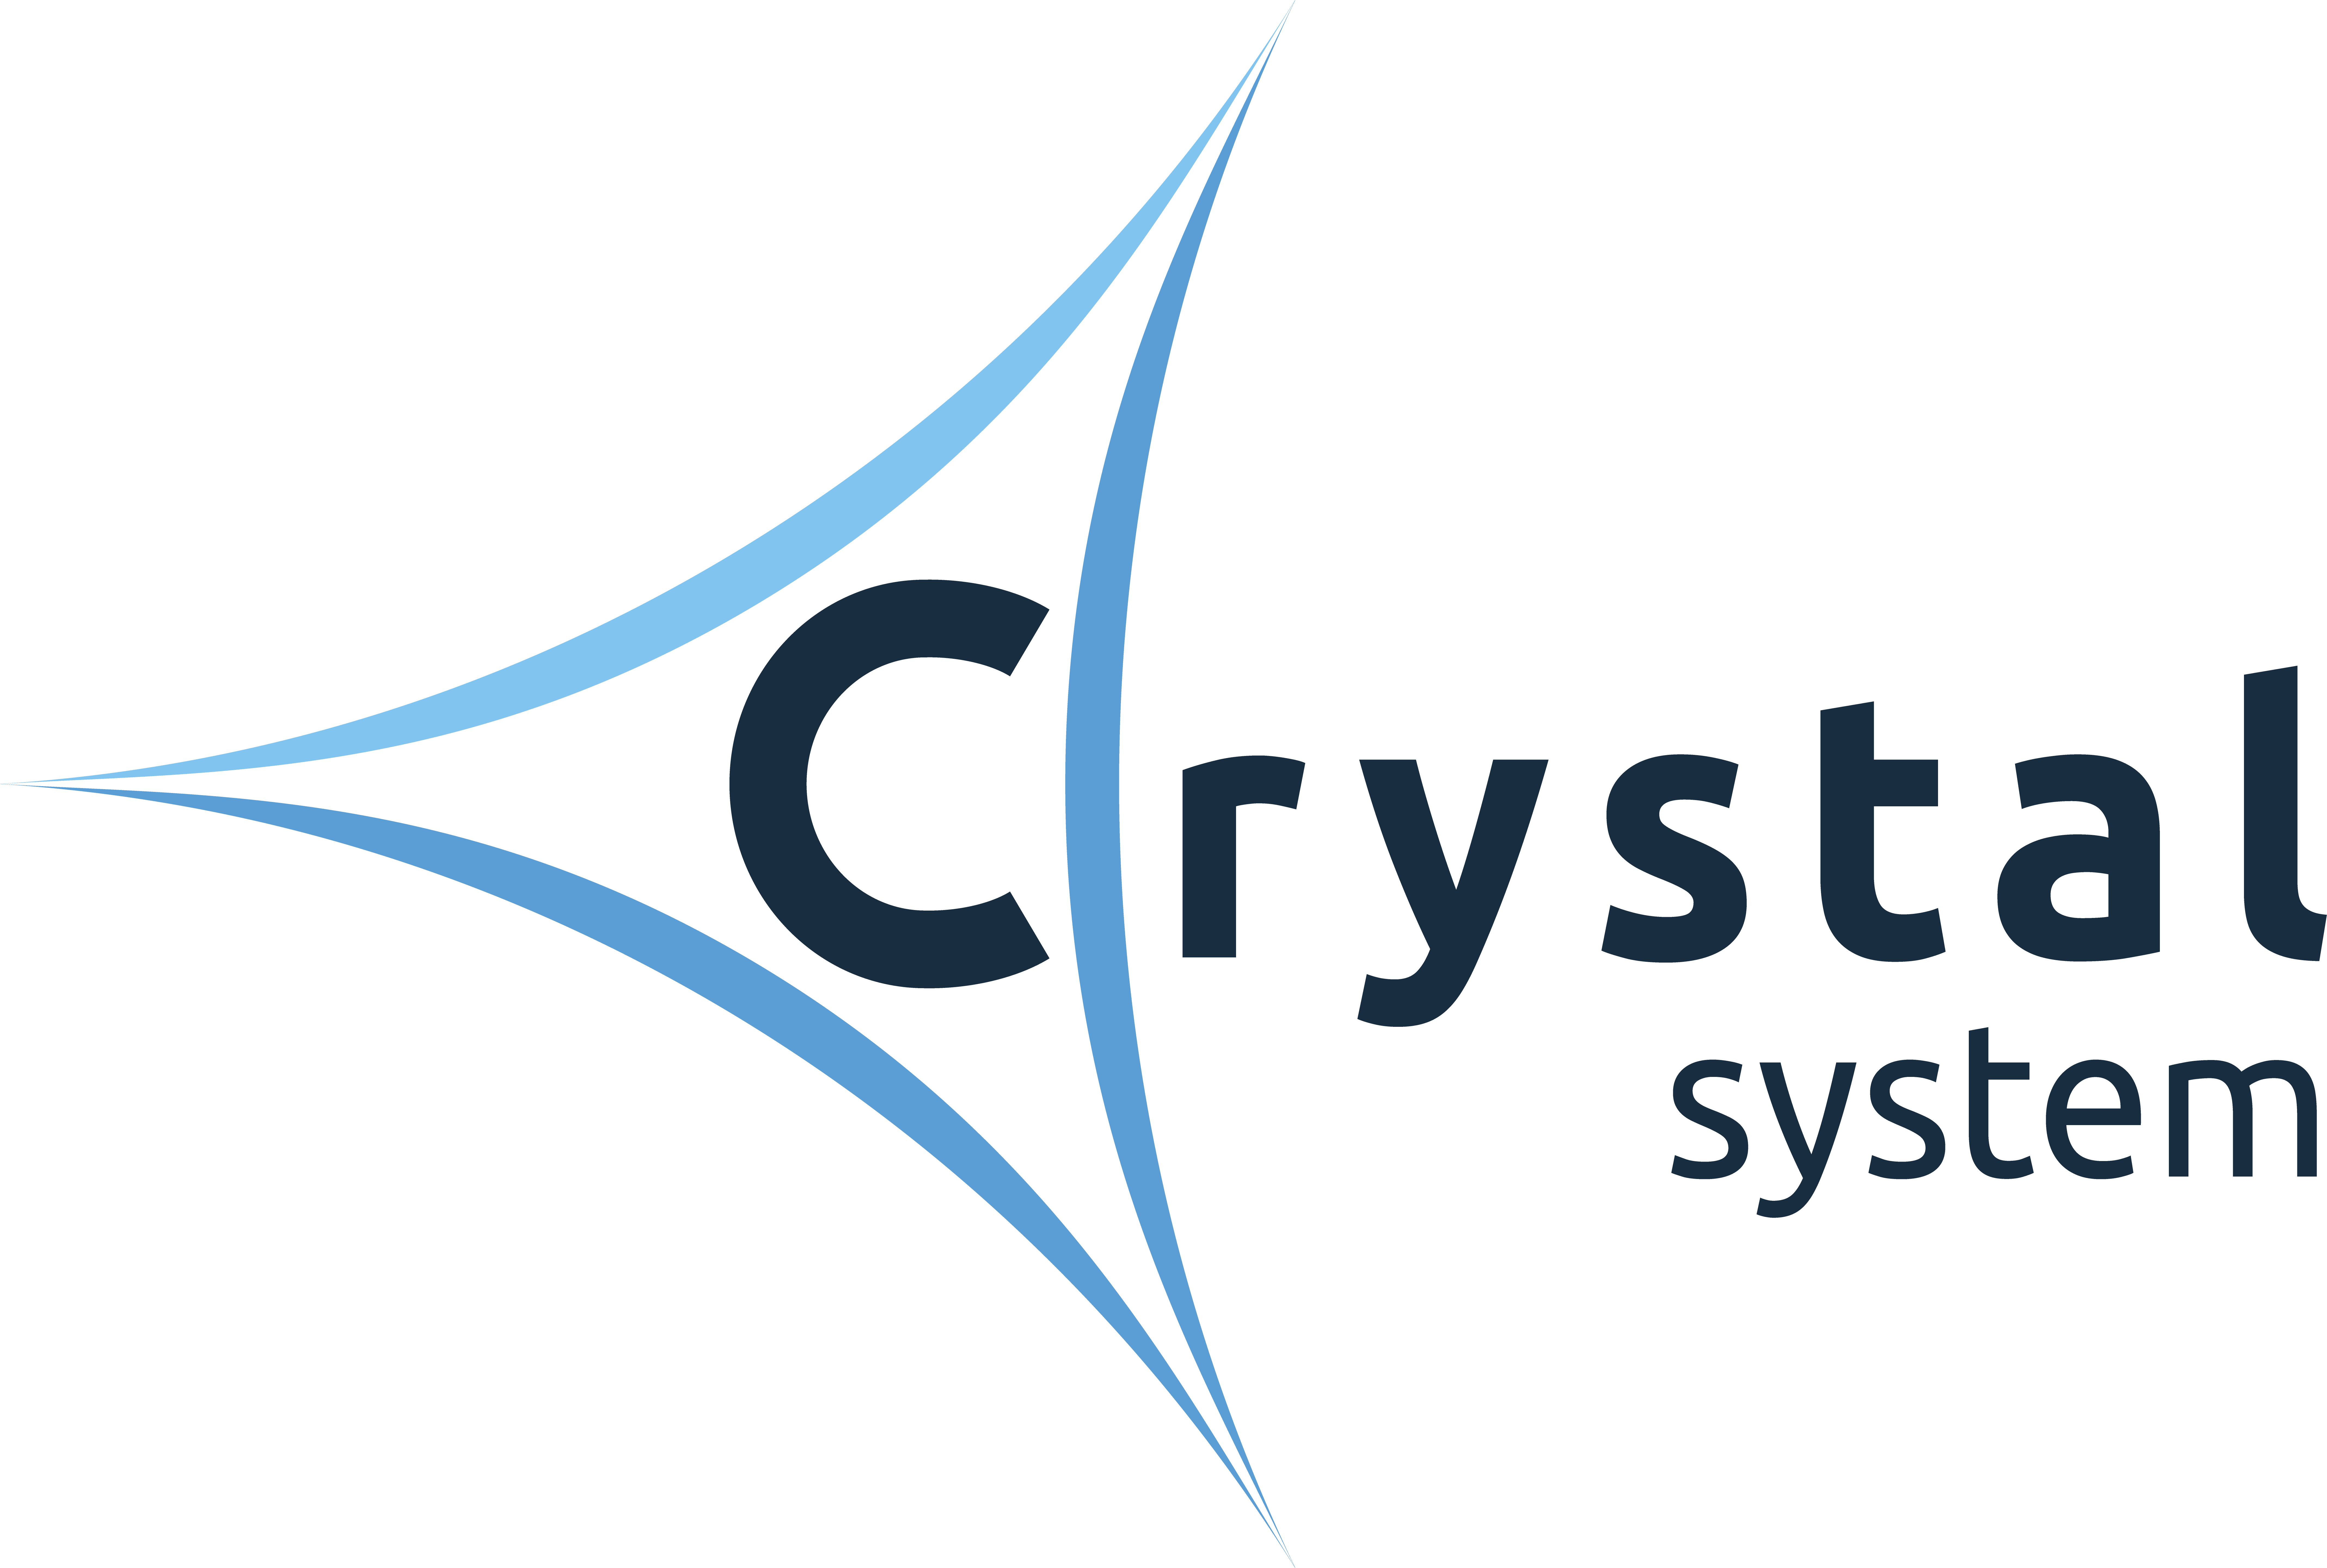 Near Shore Software Company & Implementation Services | Crystal System